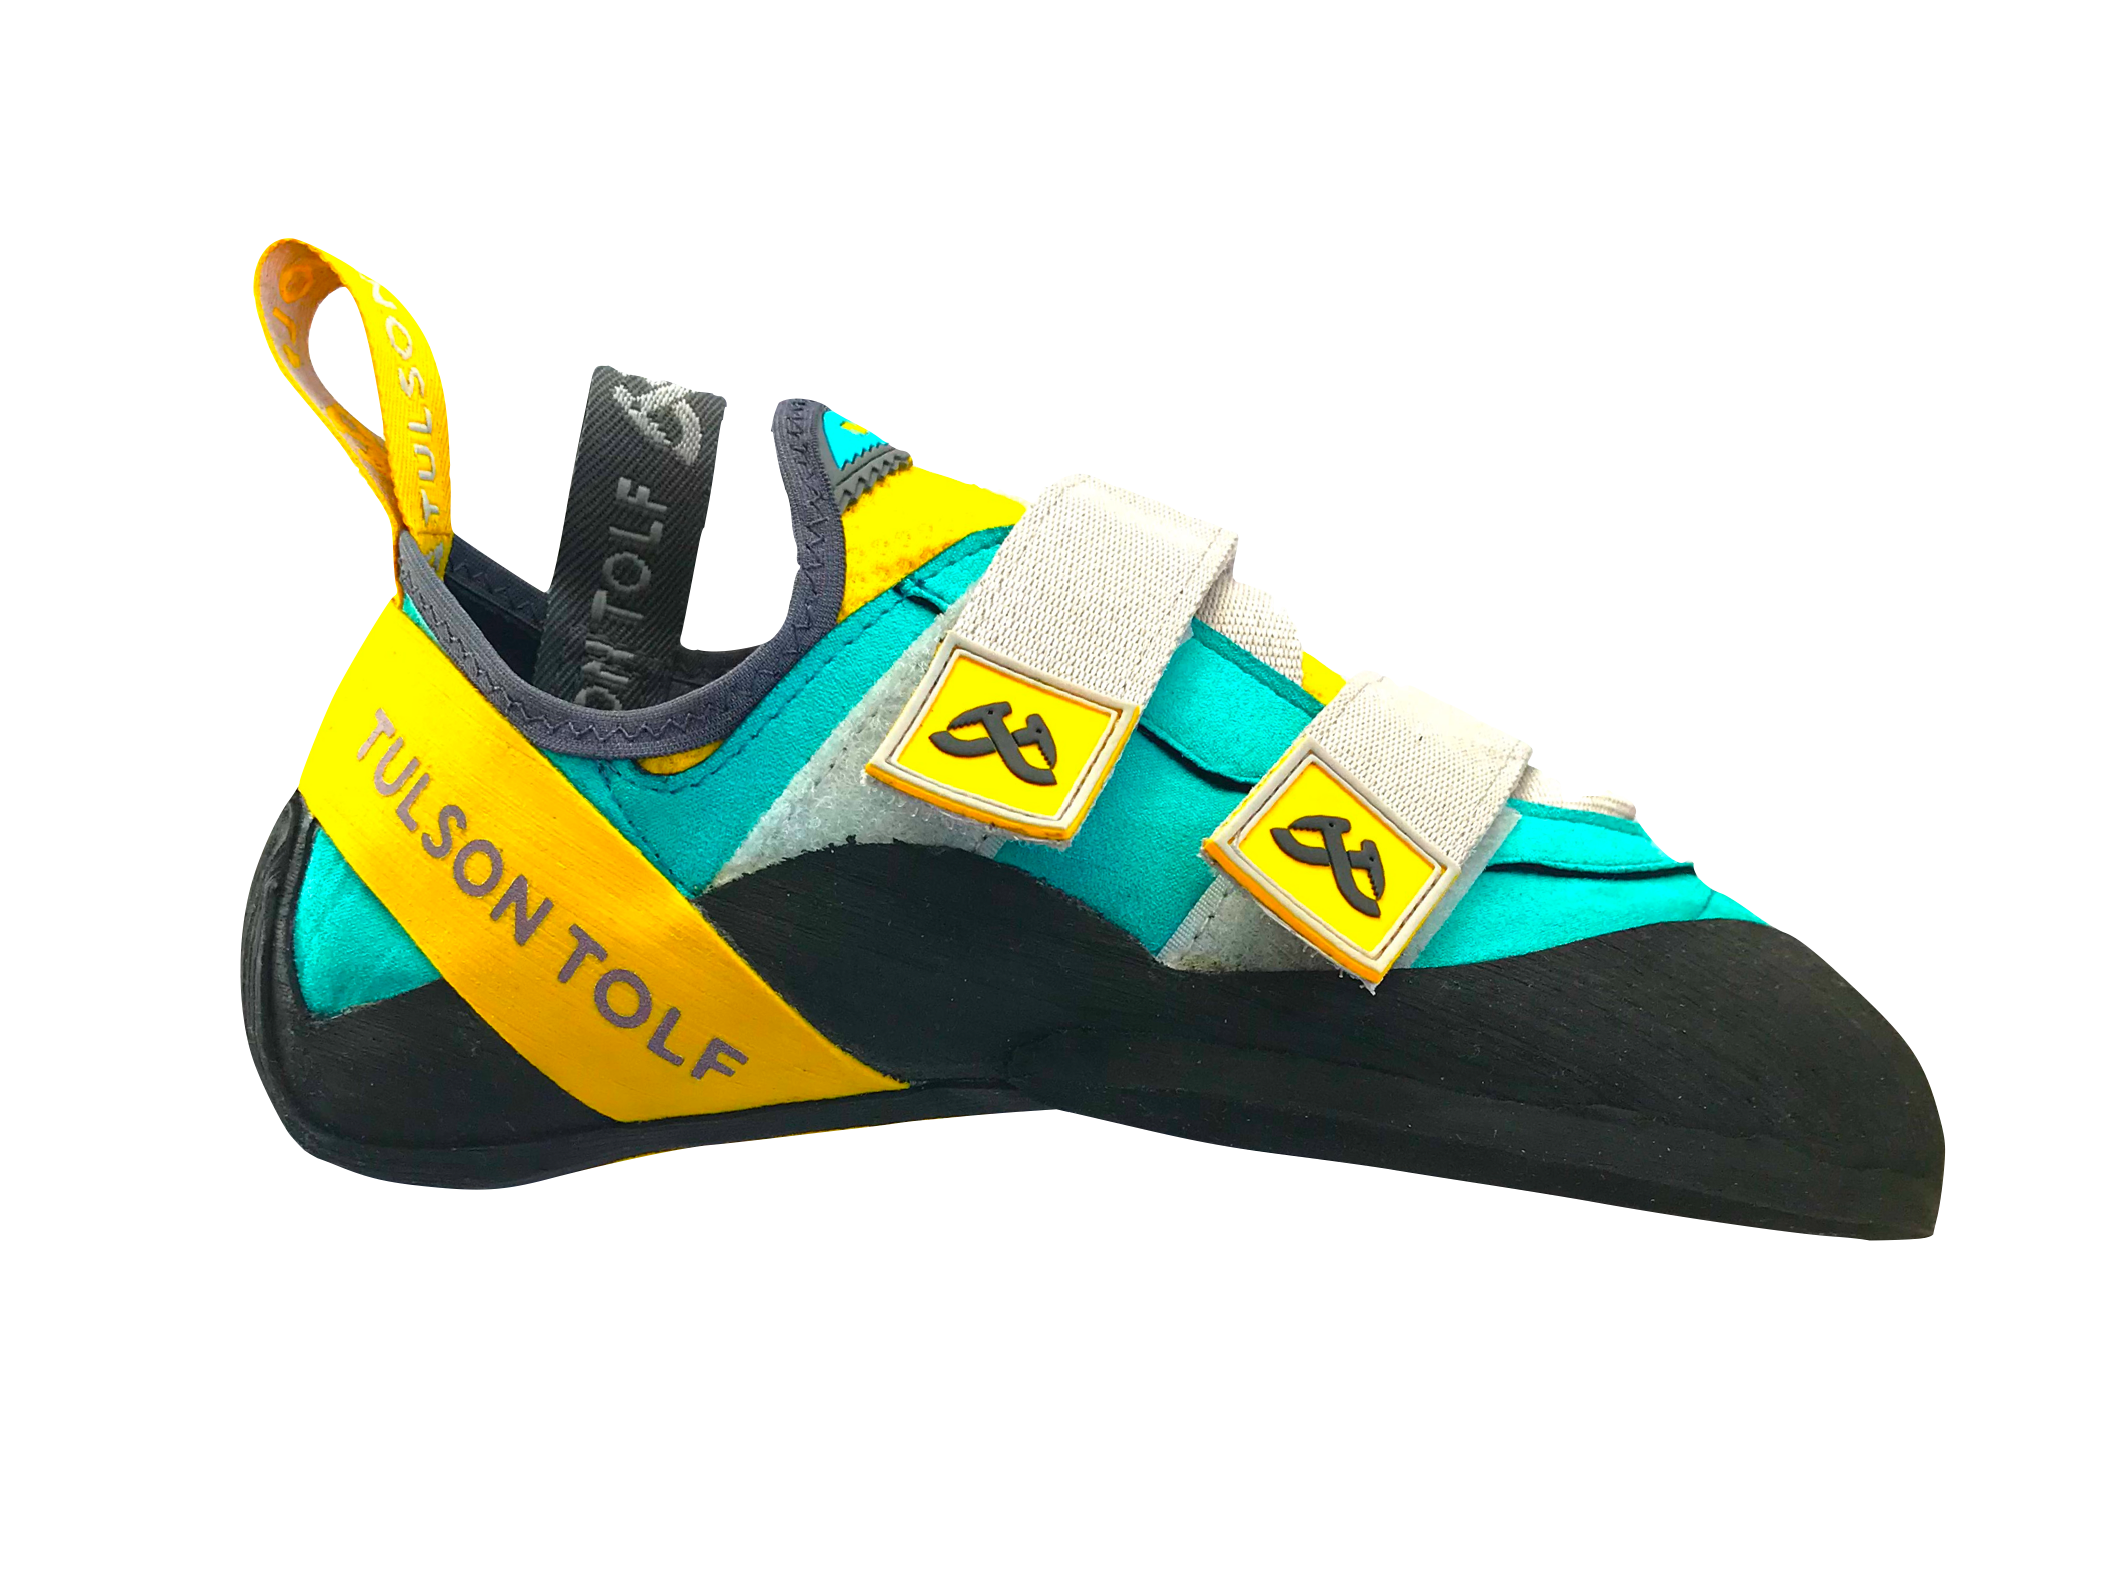 TRAD VELCRO TULSON TOLF CLIMBING SHOES PIES DE GATO VIBRAM CONFORTABLE BEST CLIMBING SHOES